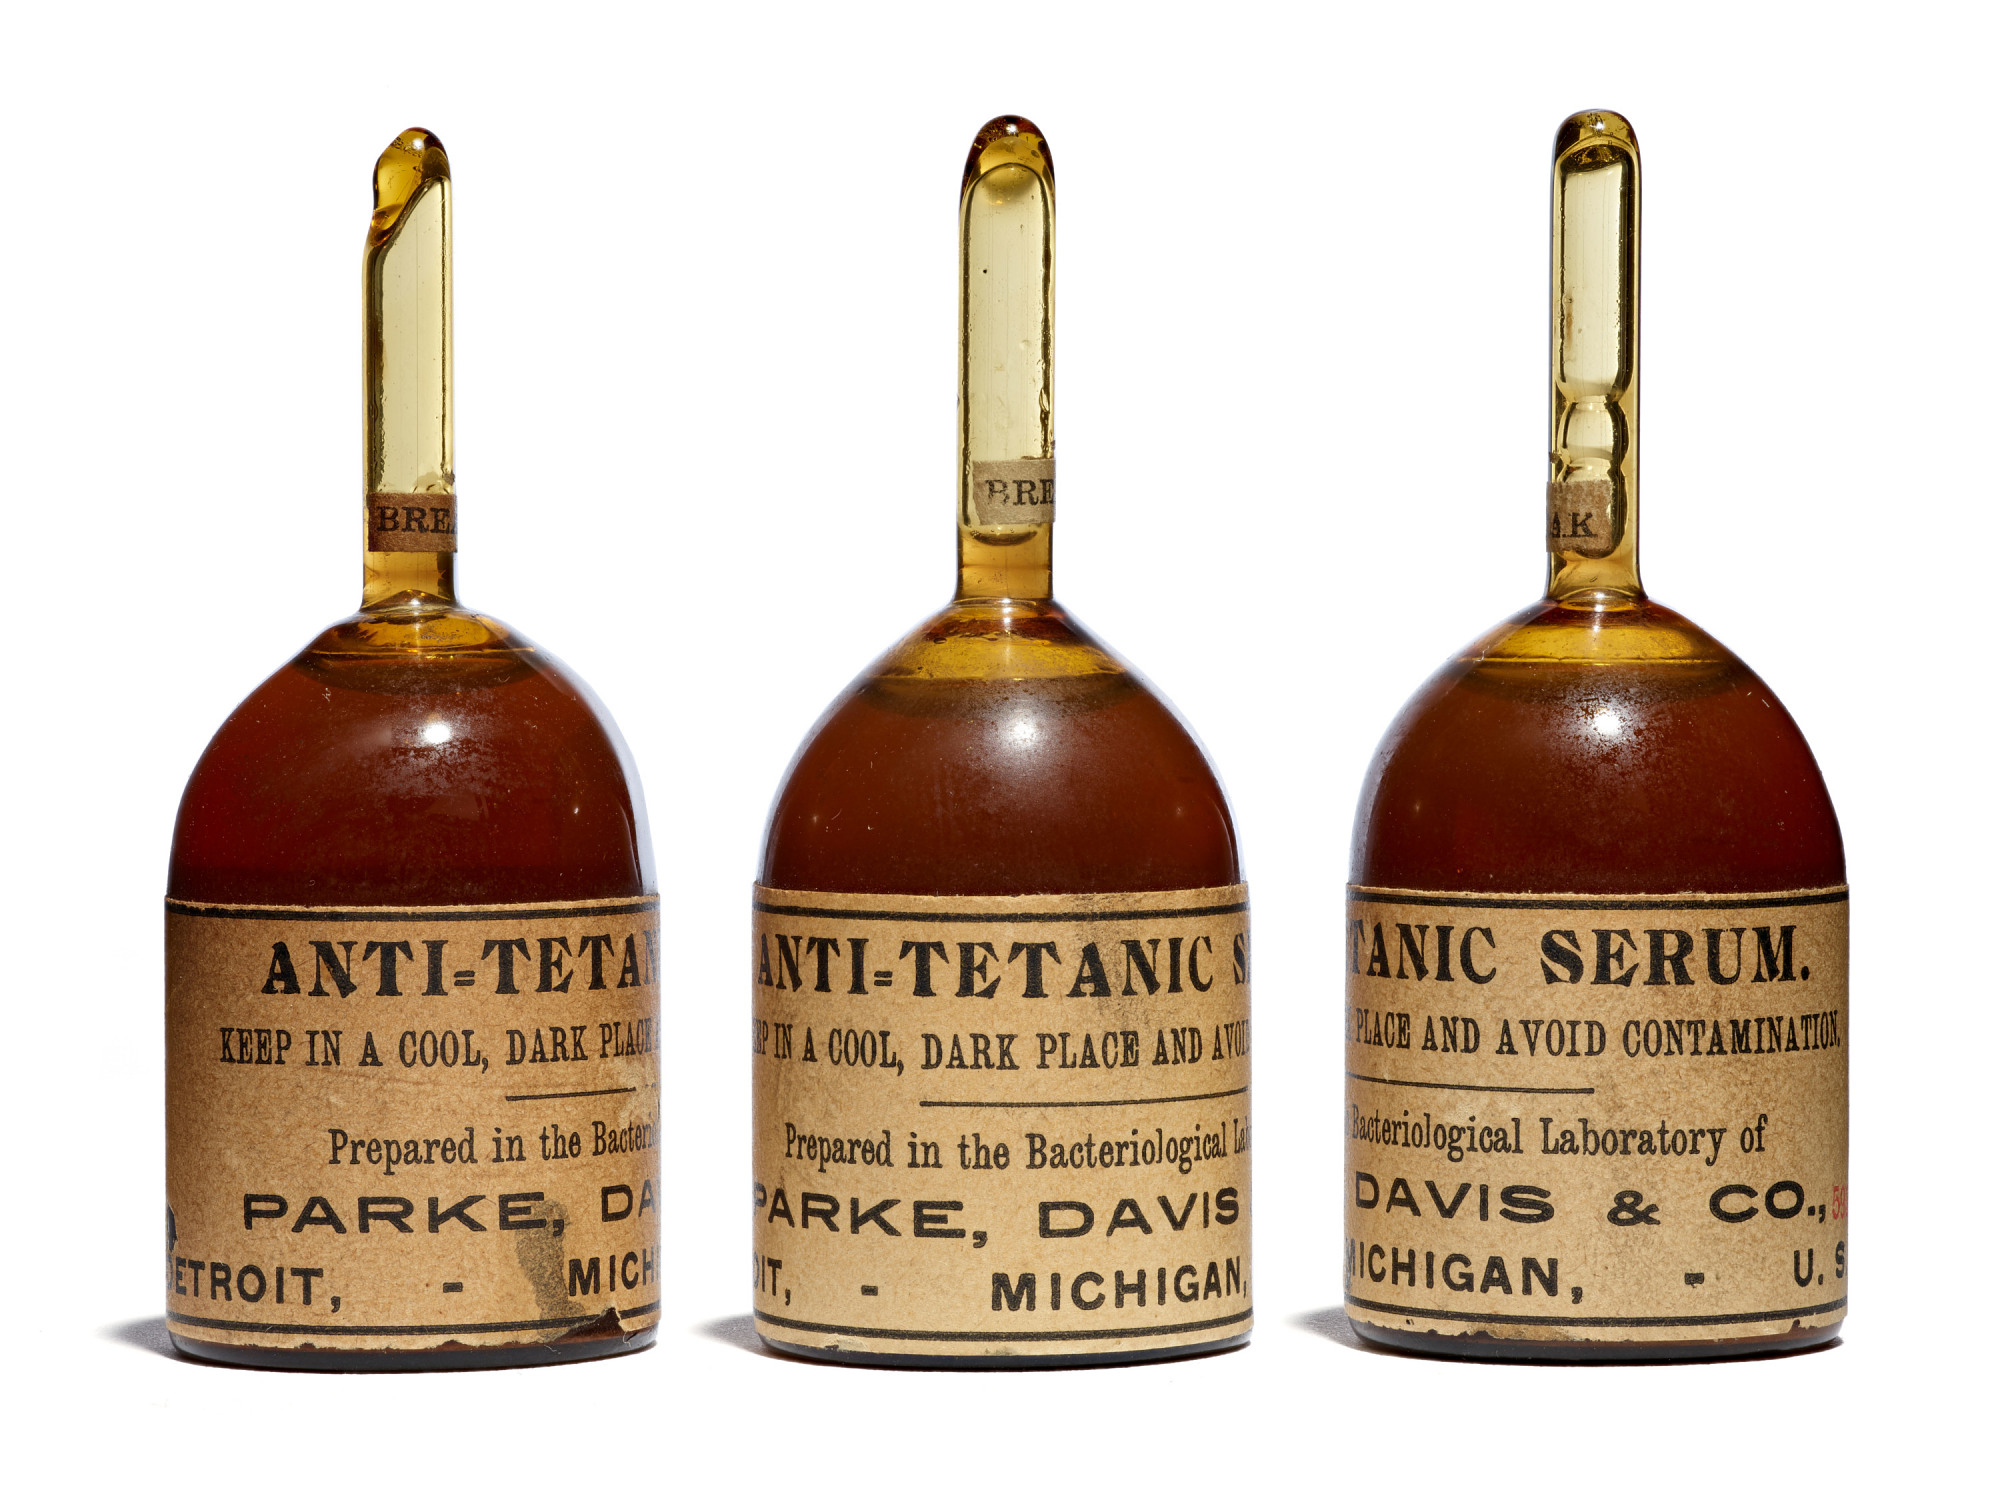 Anti-Tetanic Serum, 1898